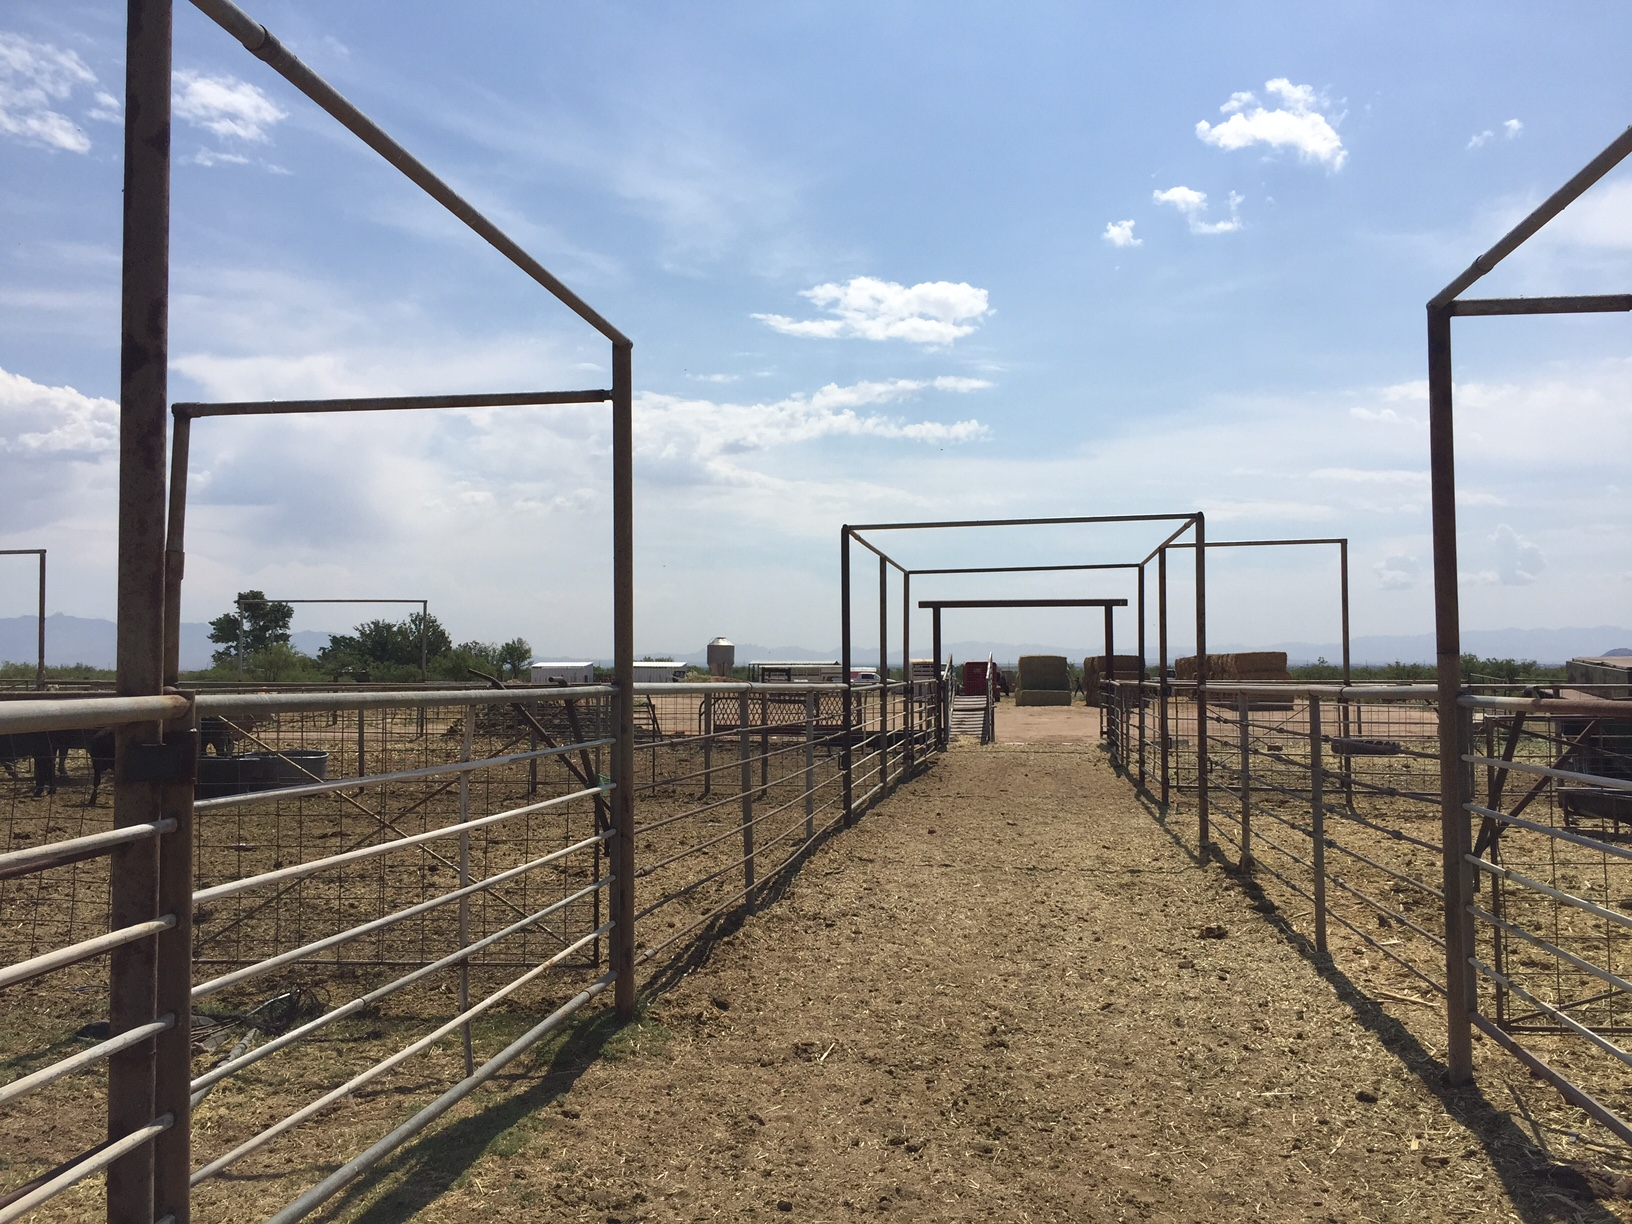 Alley in Cow Pens